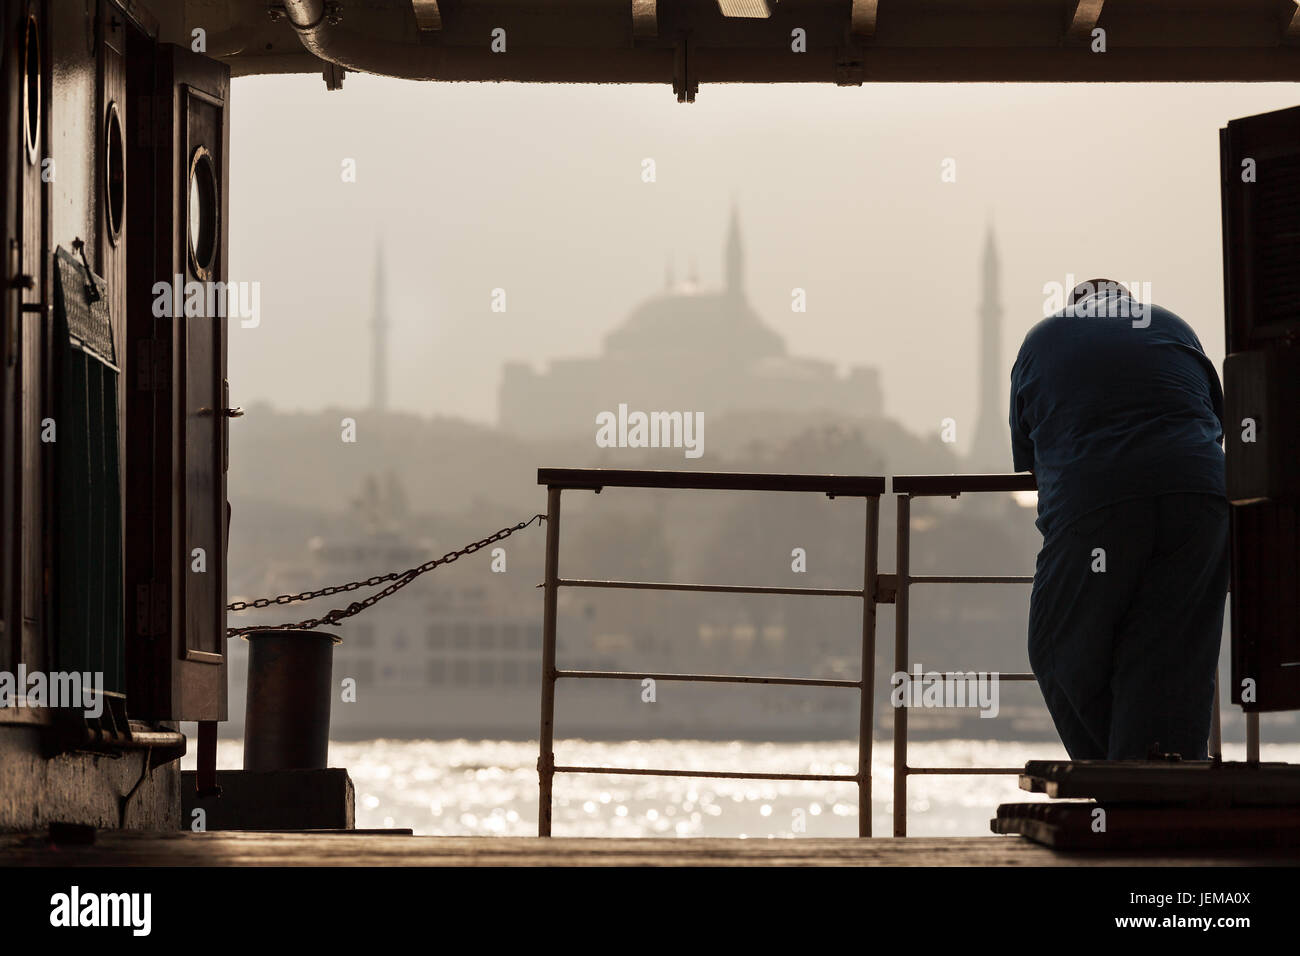 Man standing in the passenger ship and look the beauty of Hagia Sophia in Istanbul and Bosporus. - Stock Image